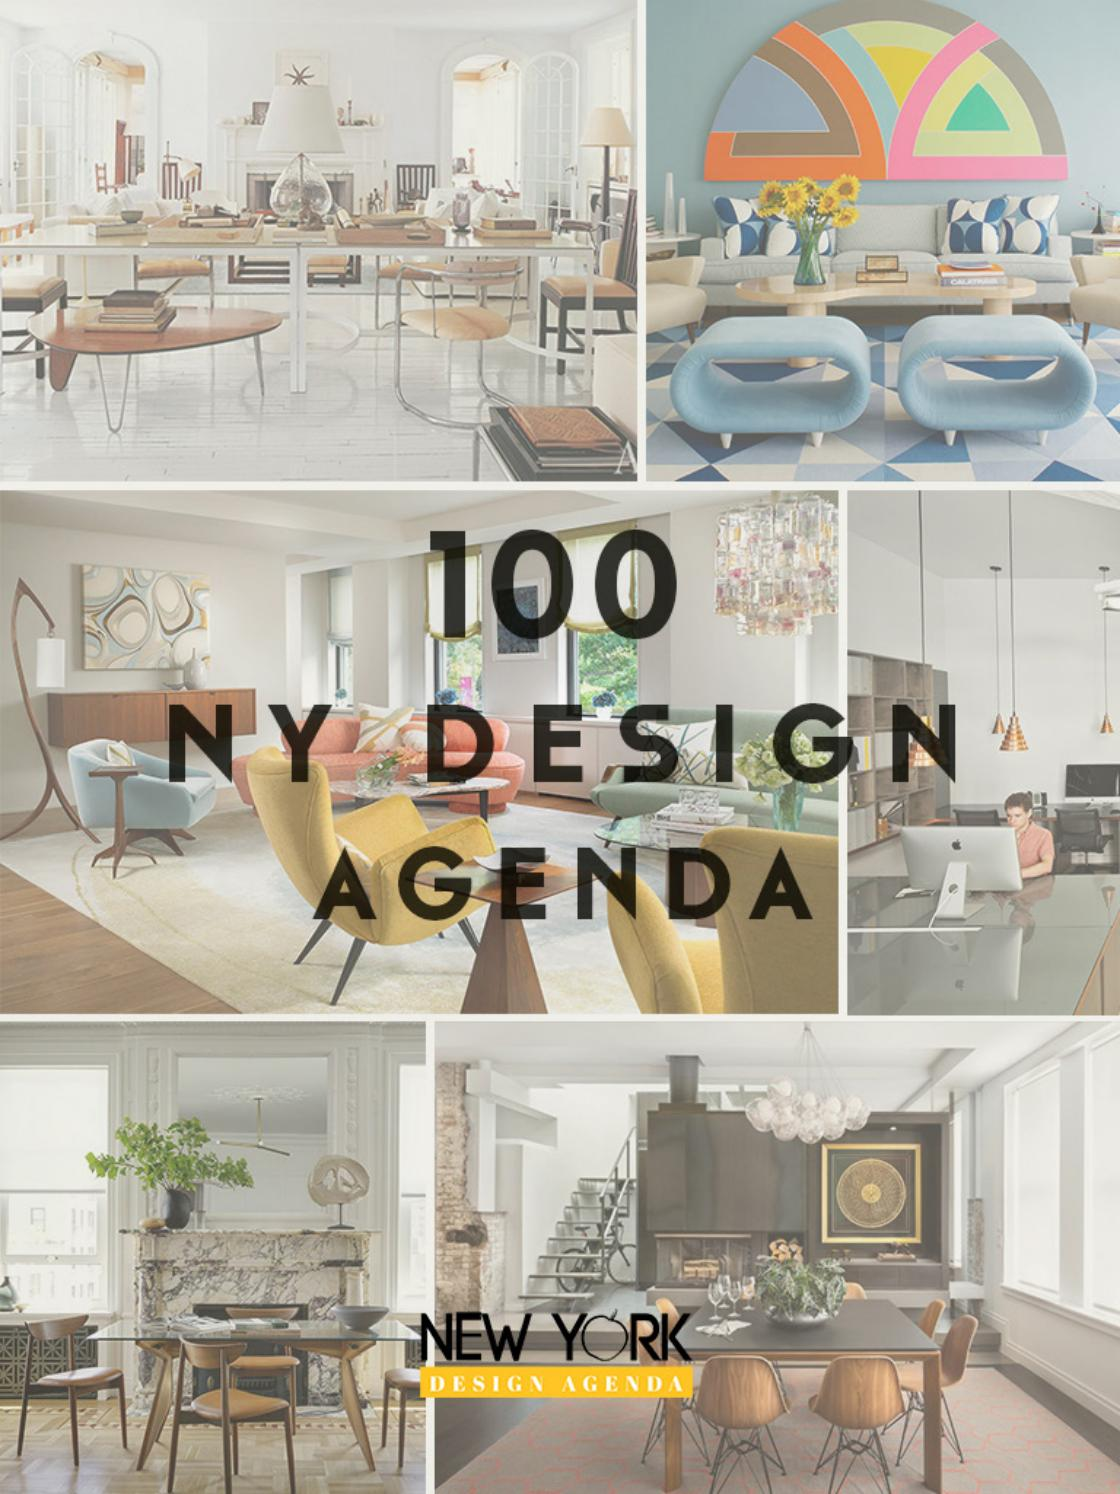 david kleinberg designs a warm and modern manhattan apartment manhattan designers Interior Design | The Best Interior Projects in New York